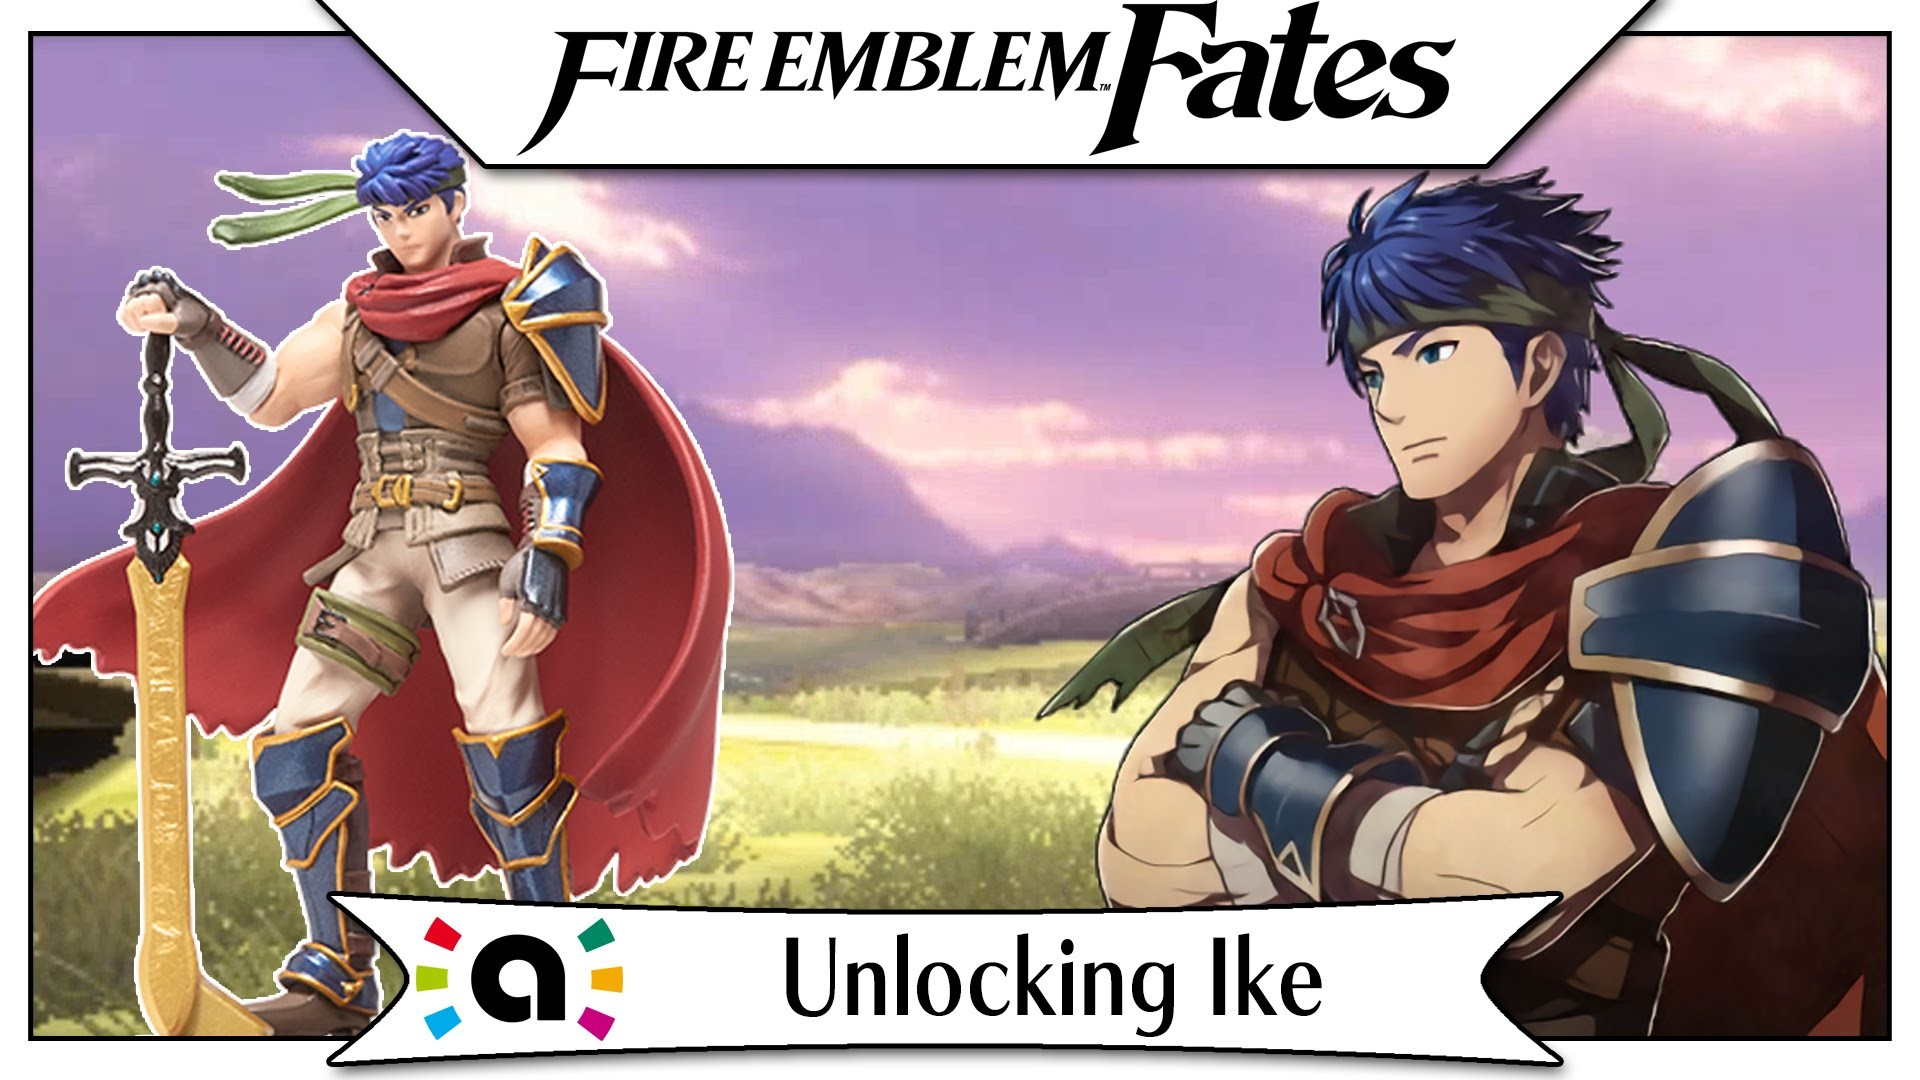 1920x1080 Fire Emblem Fates - How To Unlock Ike & EXCLUSIVE Accessories With Amiibo!  [Tips & Tricks] - YouTube